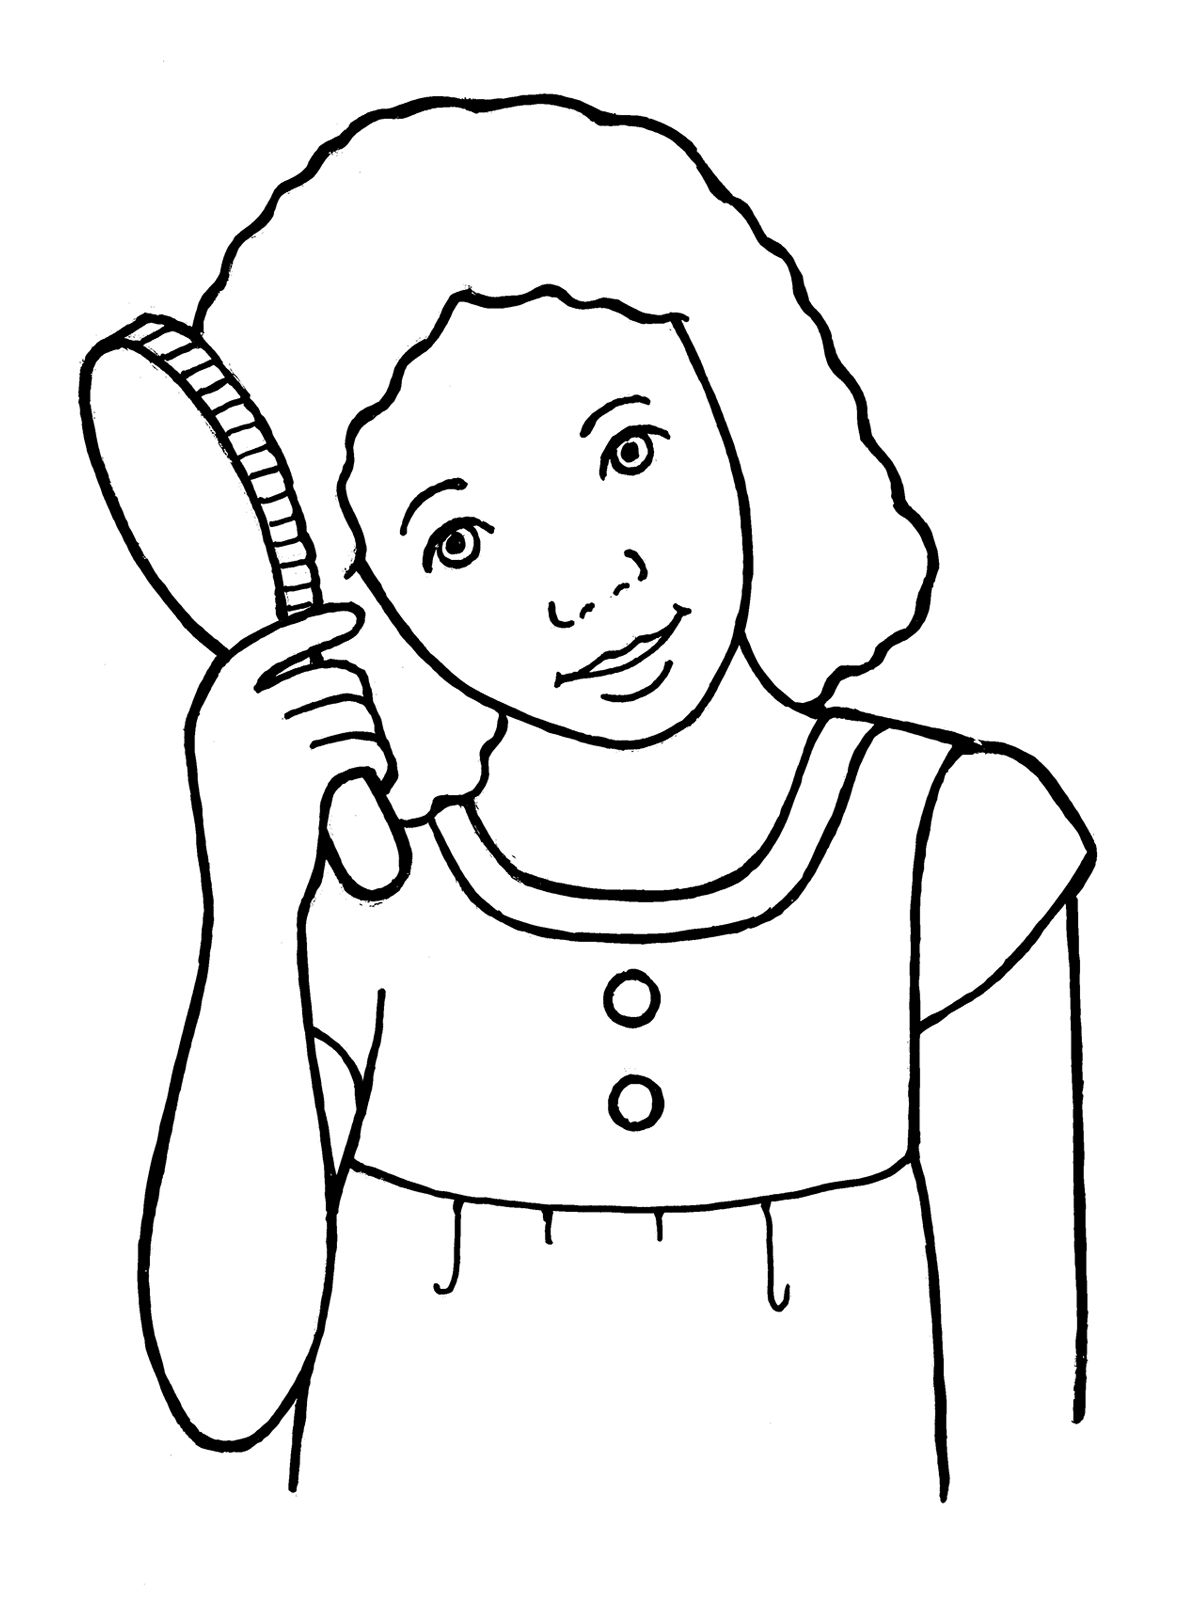 brushing hair coloring pages - photo#4